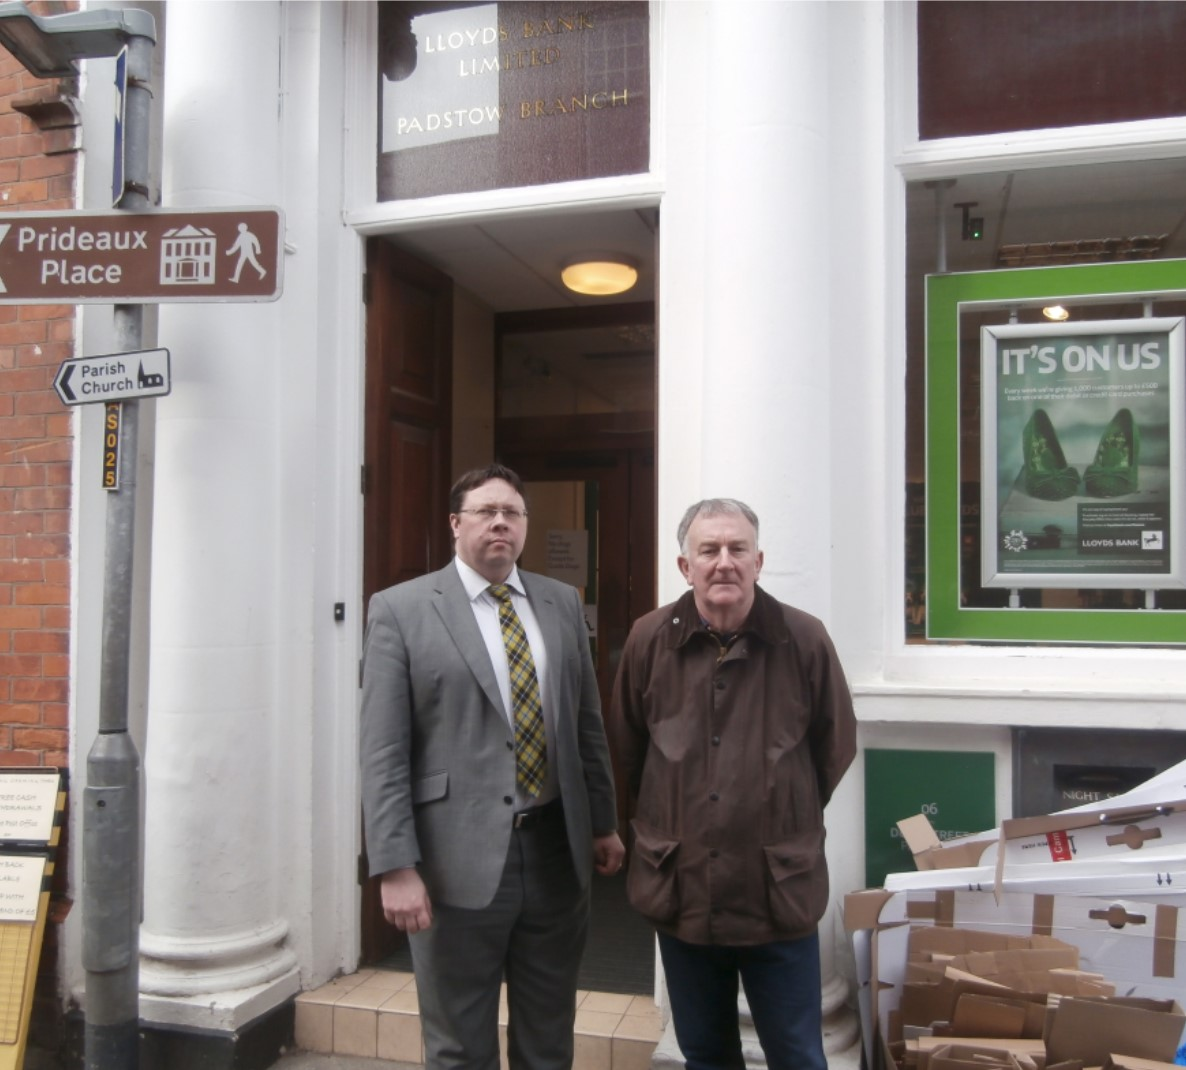 Lloyds_Bank_in_Padstow.jpg